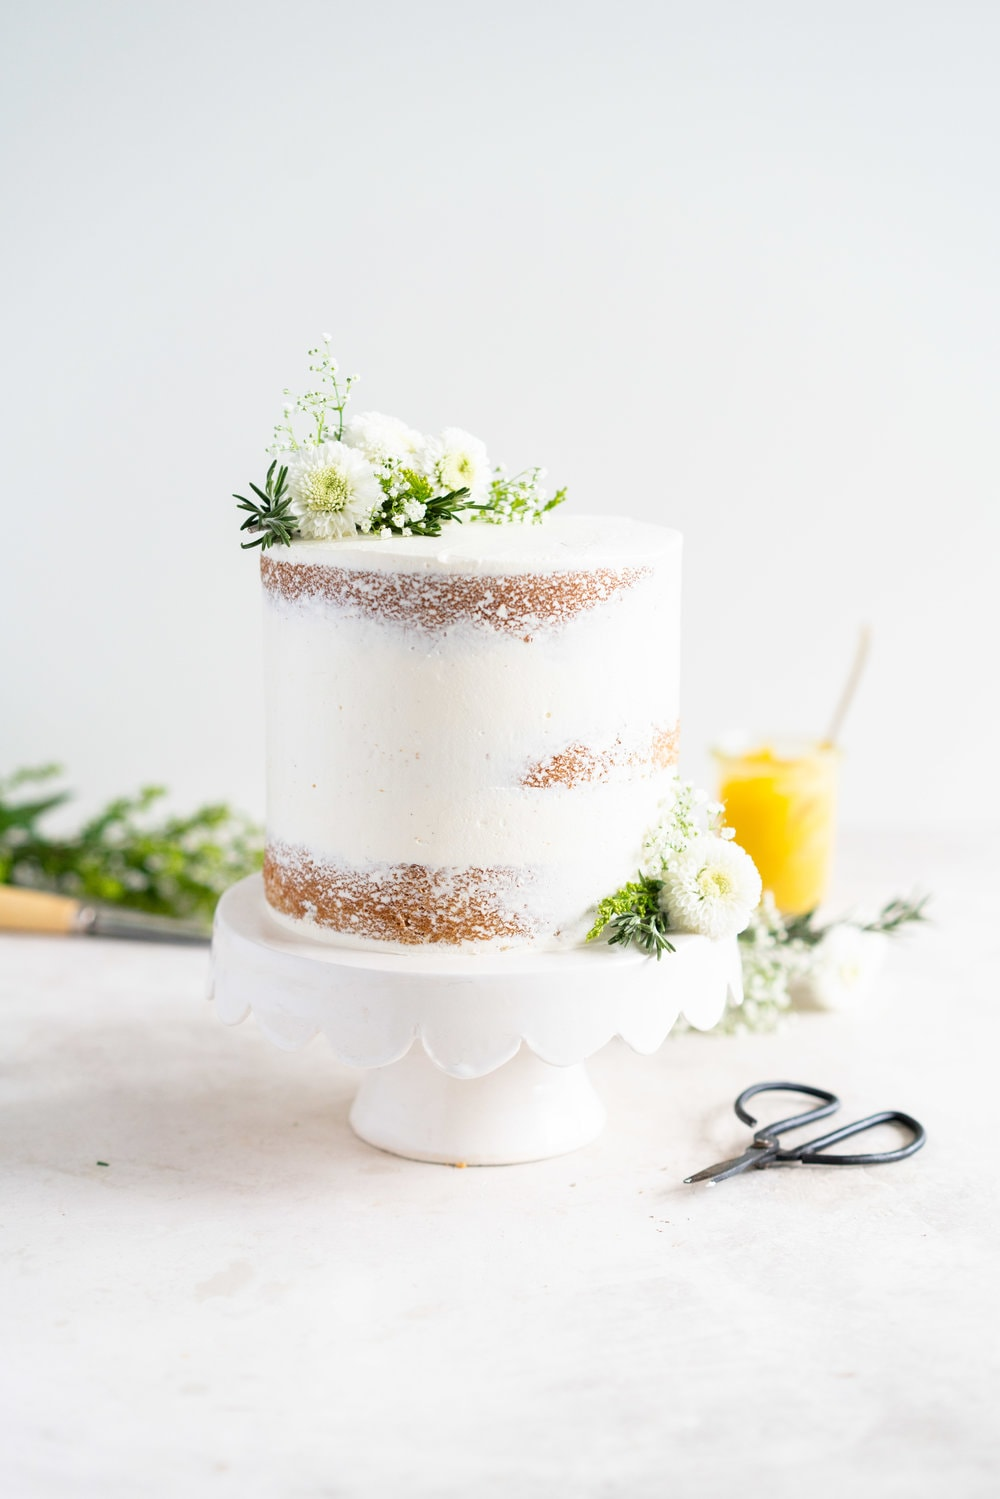 Olive Oil Layer Cake with Meyer Lemon Curd and Rosemary German Buttercream. Fruity olive oil cake is filled with a zesty meyer lemon curd, and finished in a semi naked style with a rosemary german buttercream and spring flowers. #nakedcake #oliveoilcake #meyerlemon